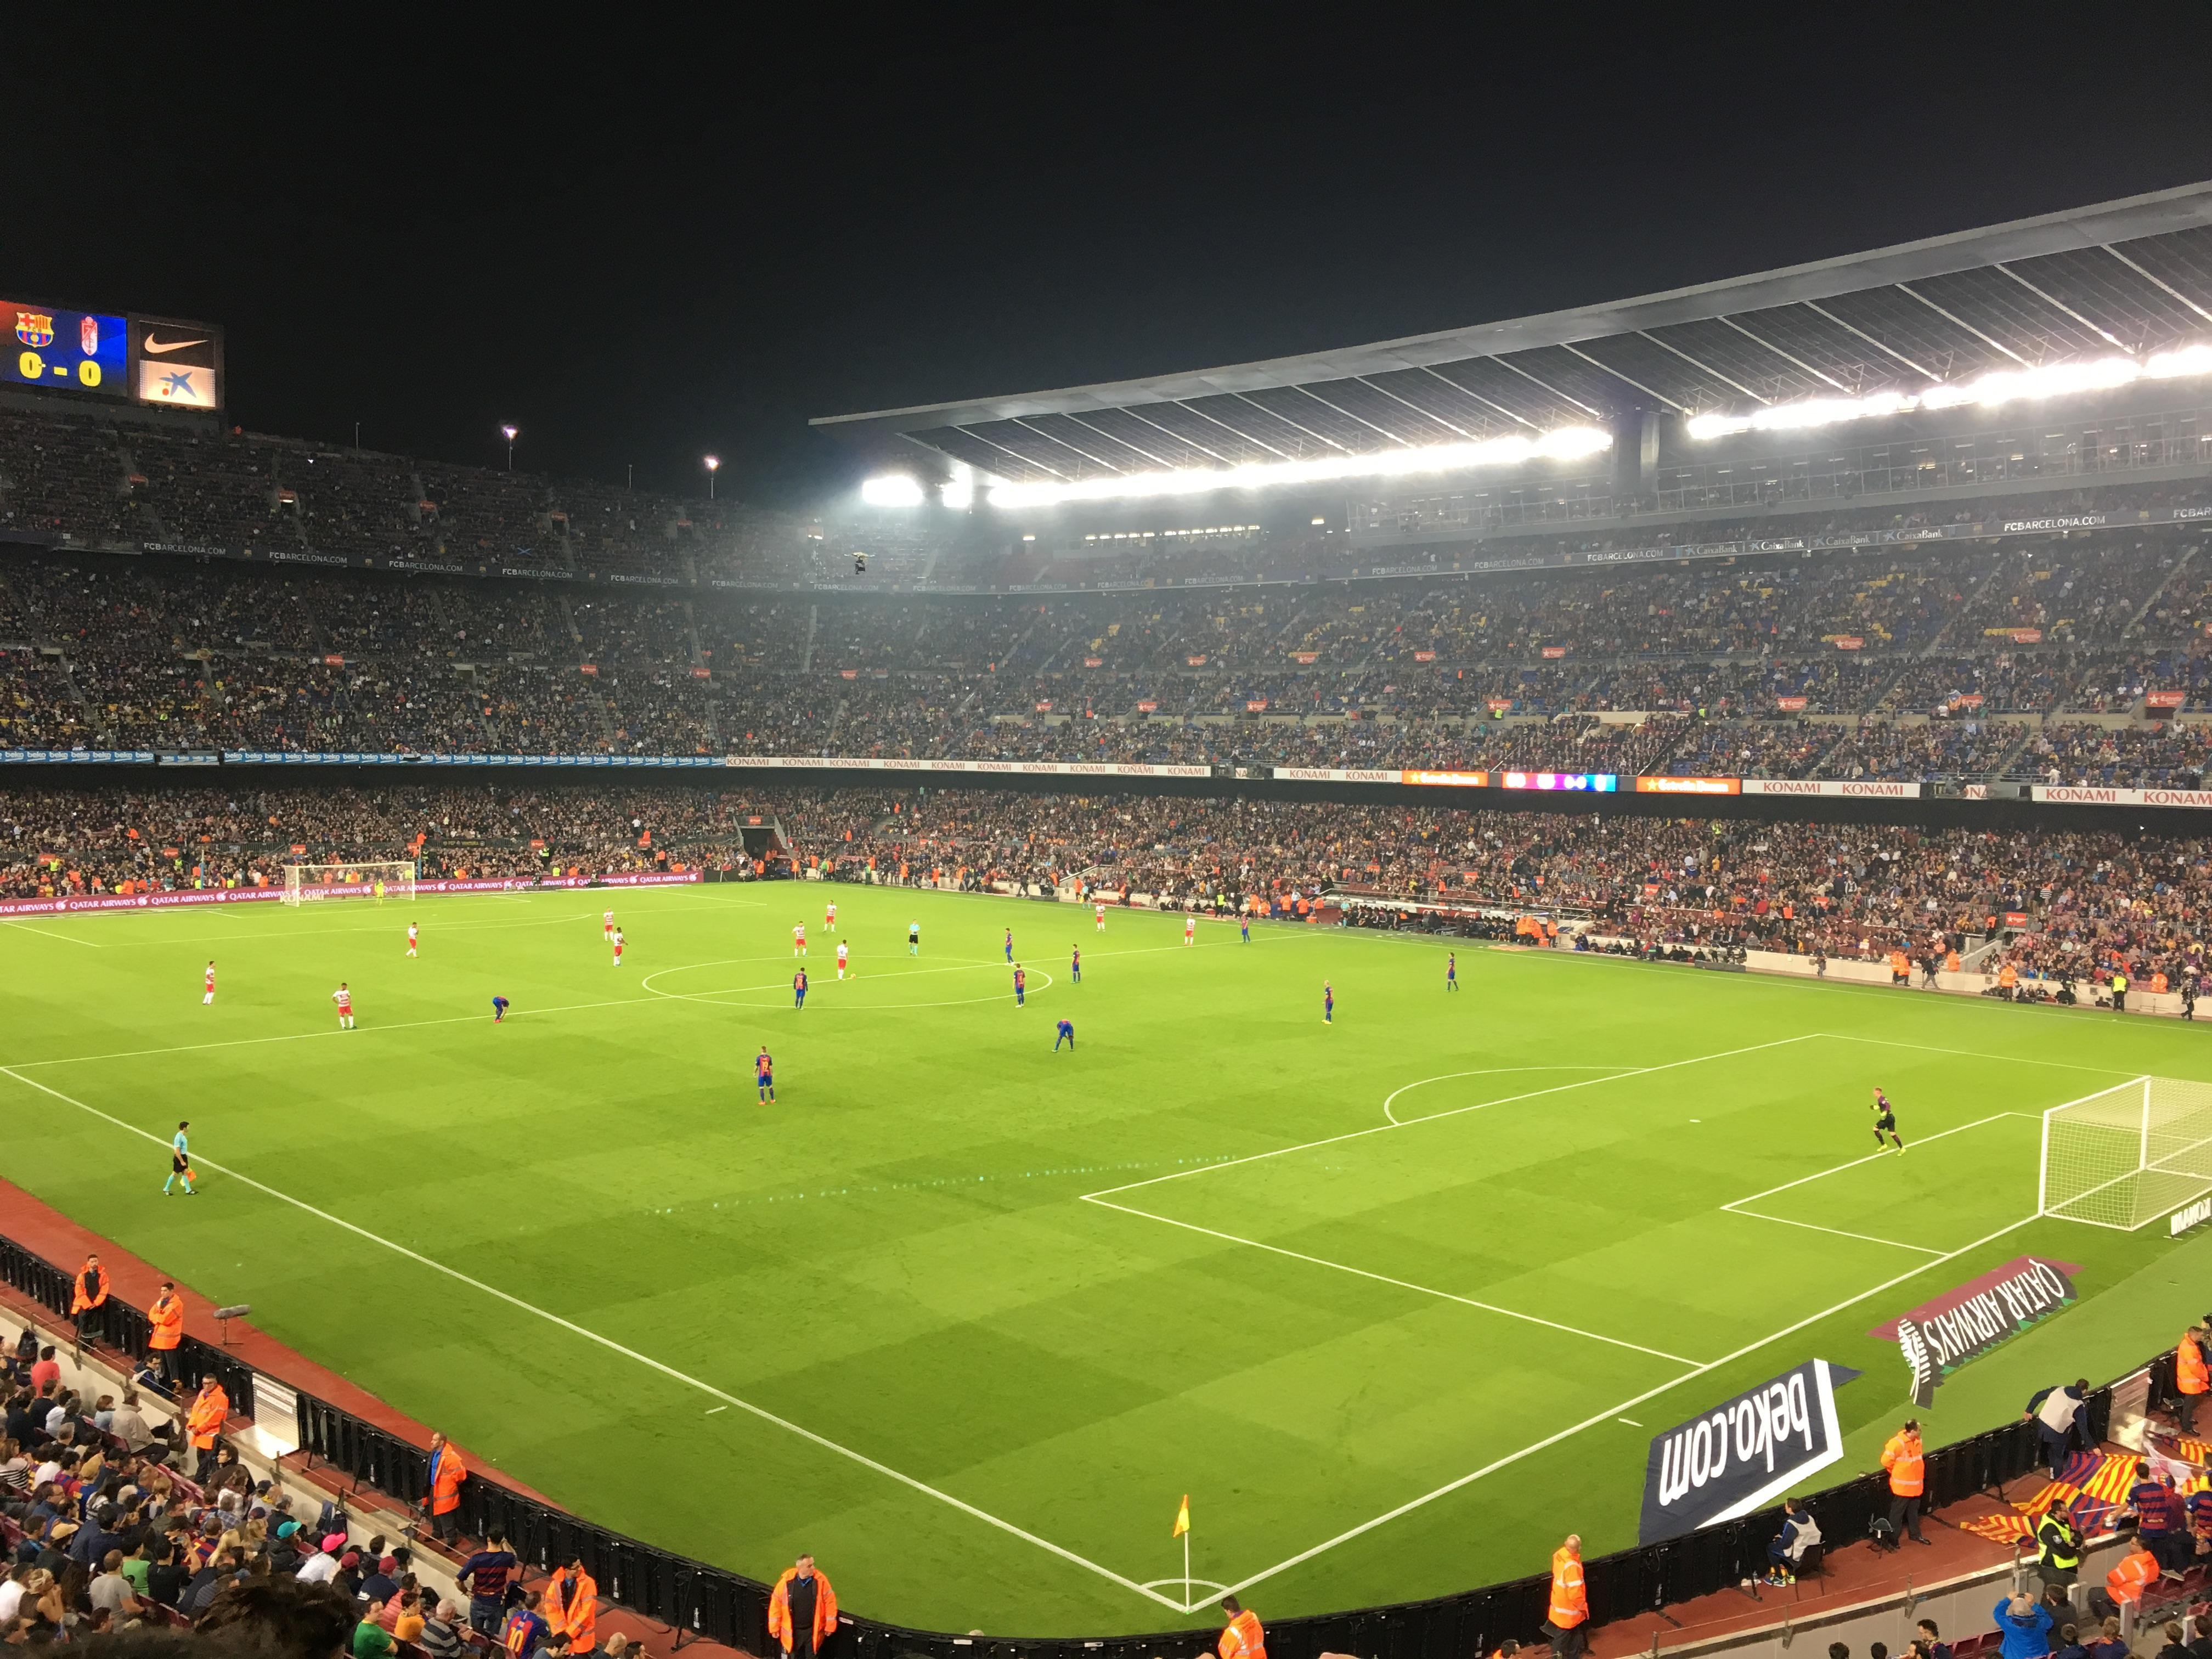 Camp Nou Section 238 Row 3 Seat 12